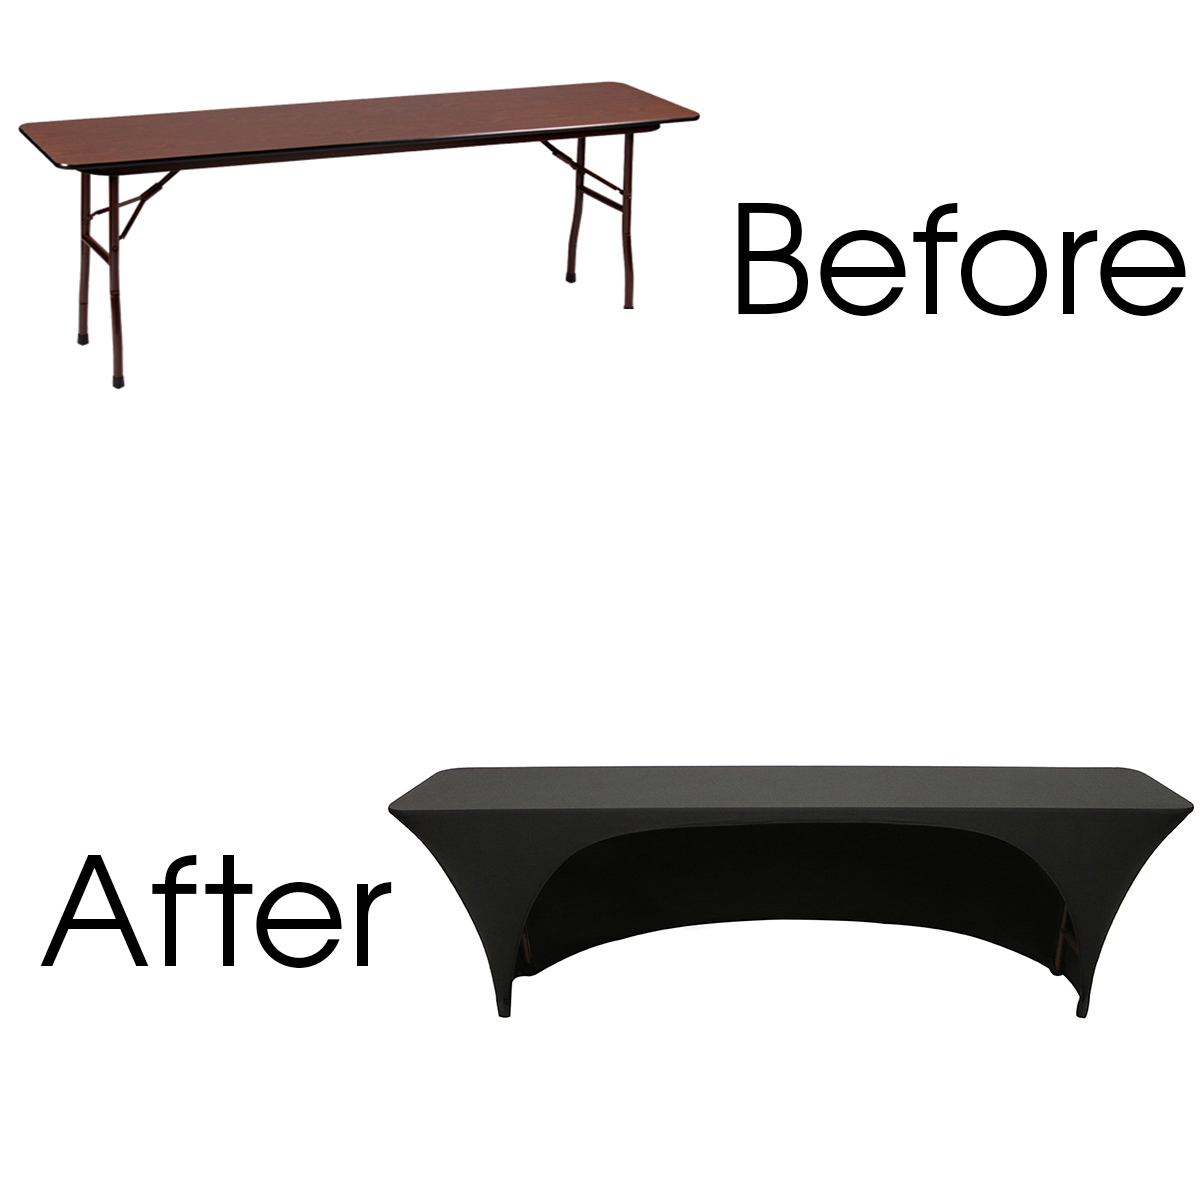 stretch-spandex-8ft-18-inches-open-back-rectangular-table-covers-black-before-after.jpg